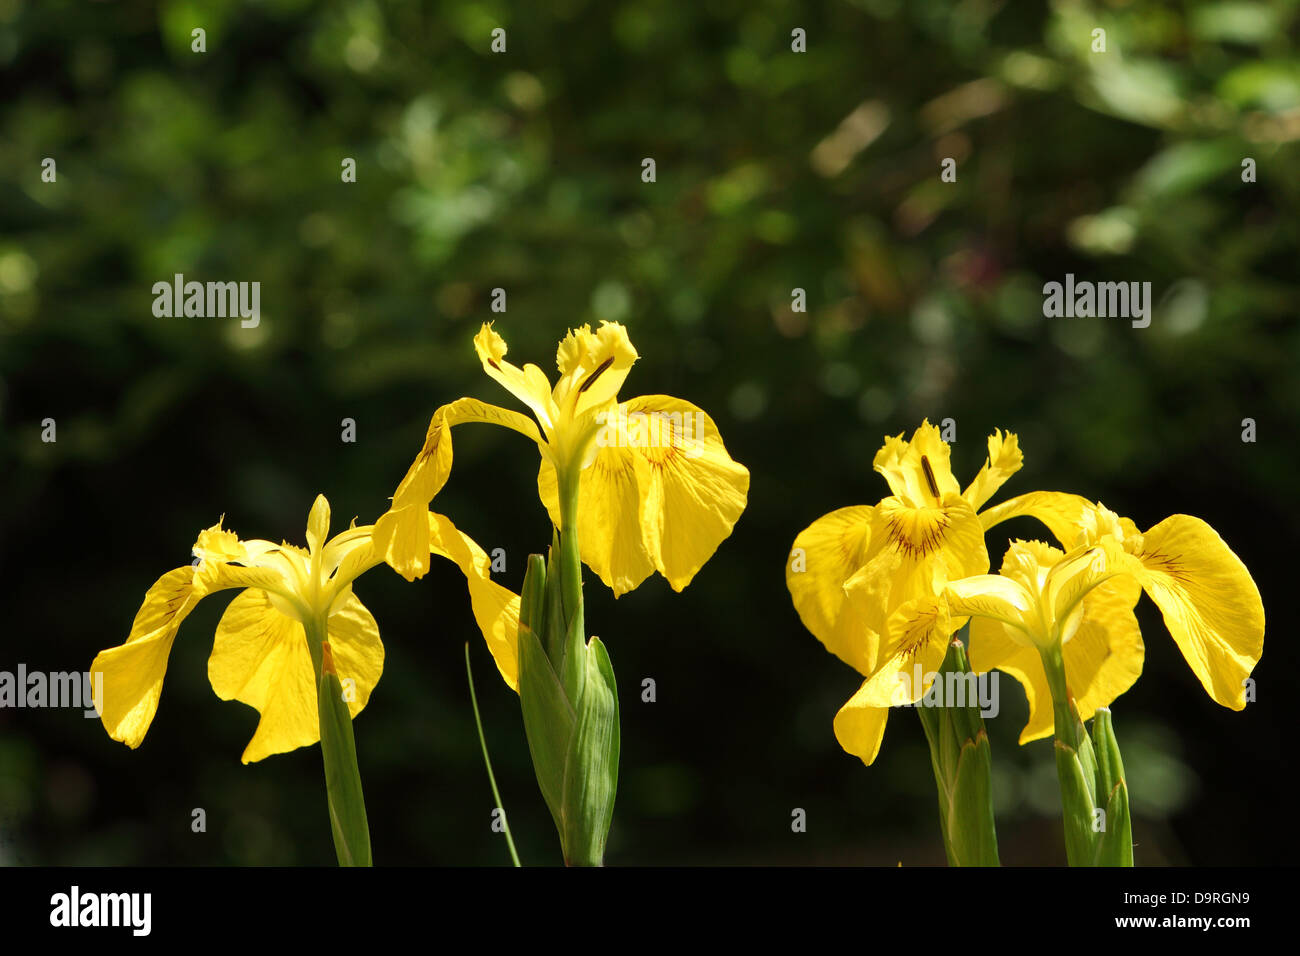 Yellow irises Iris germanica cultivars shining out amongst foliage in a garden - Stock Image